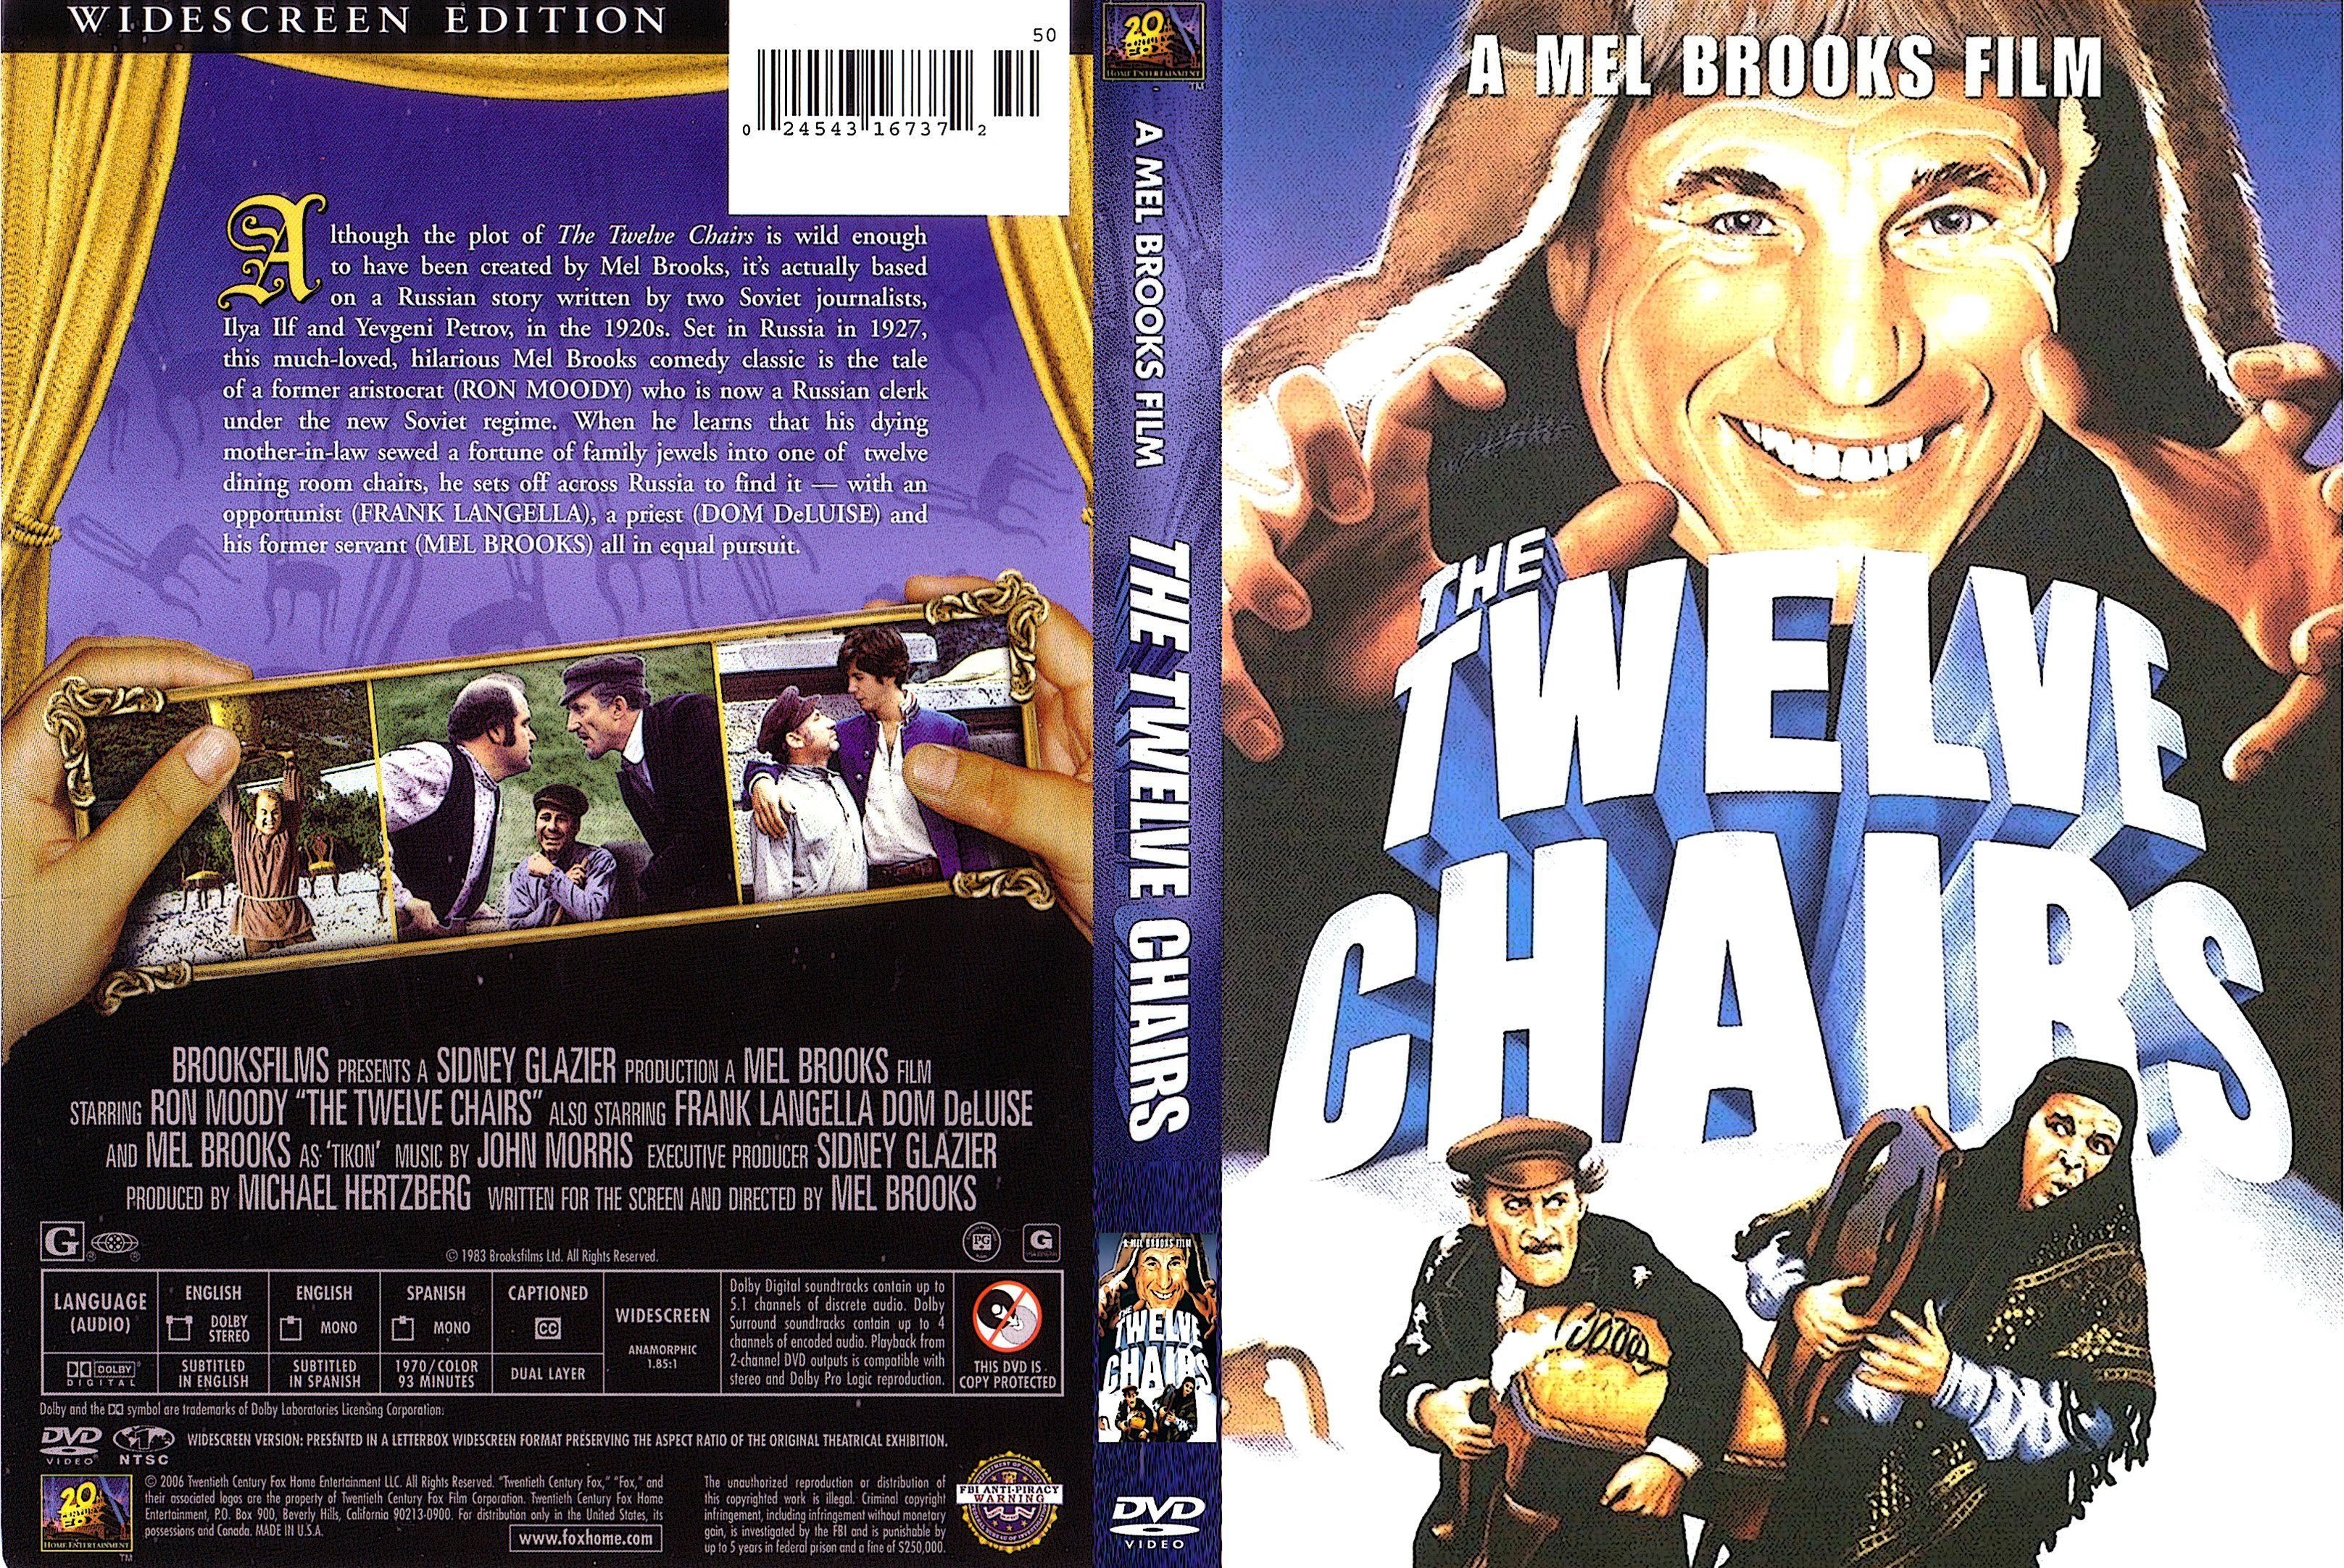 Frank langella the twelve chairs - Dvd Cover The Twelve Chairs 1970 R1